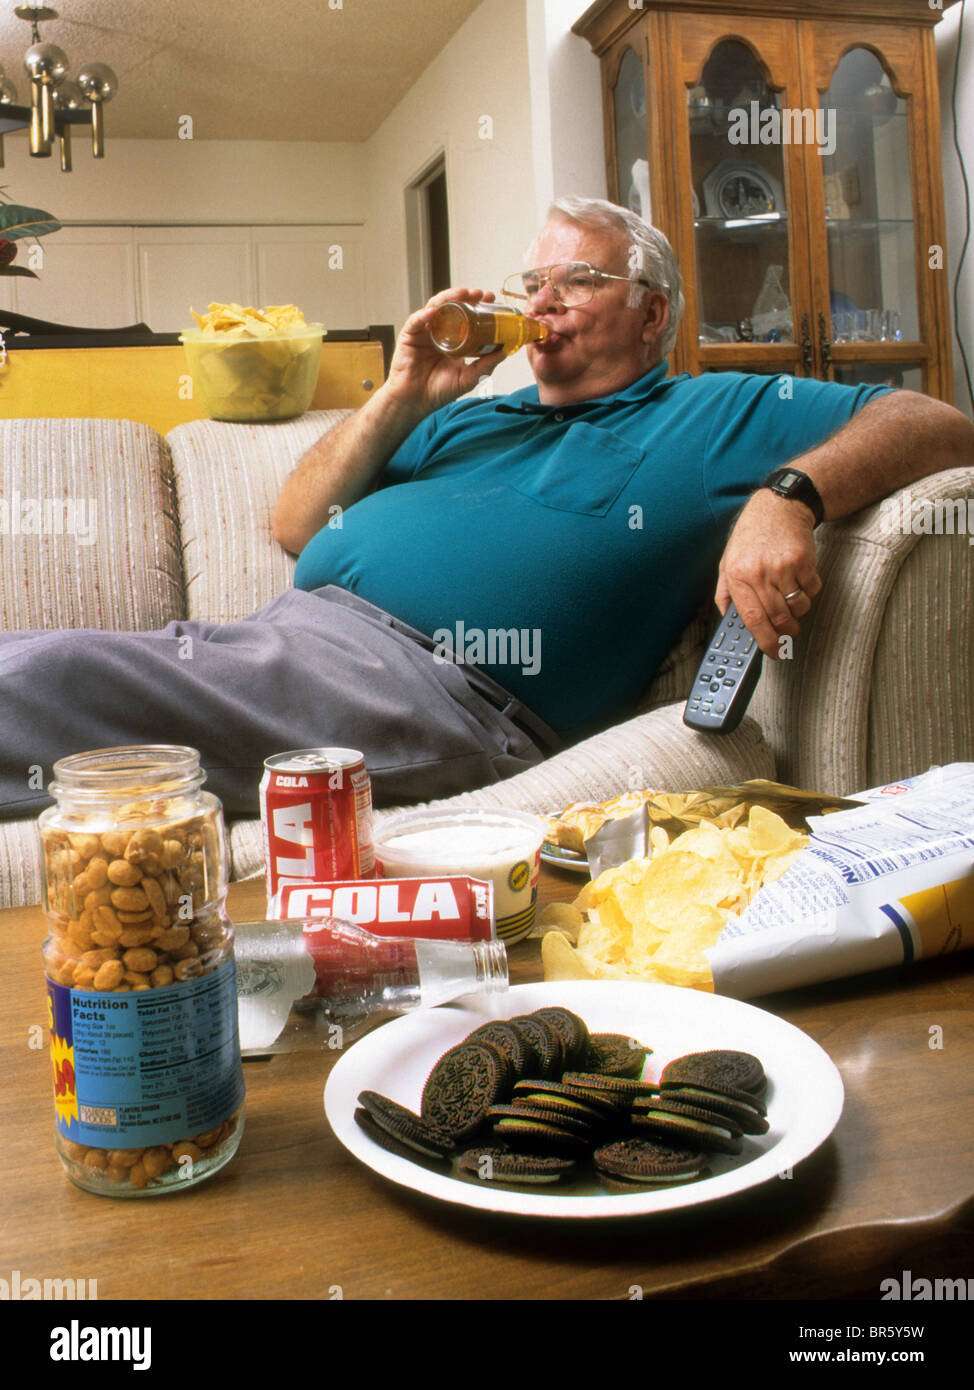 Obese Couch Potato Obese senior man junk ...